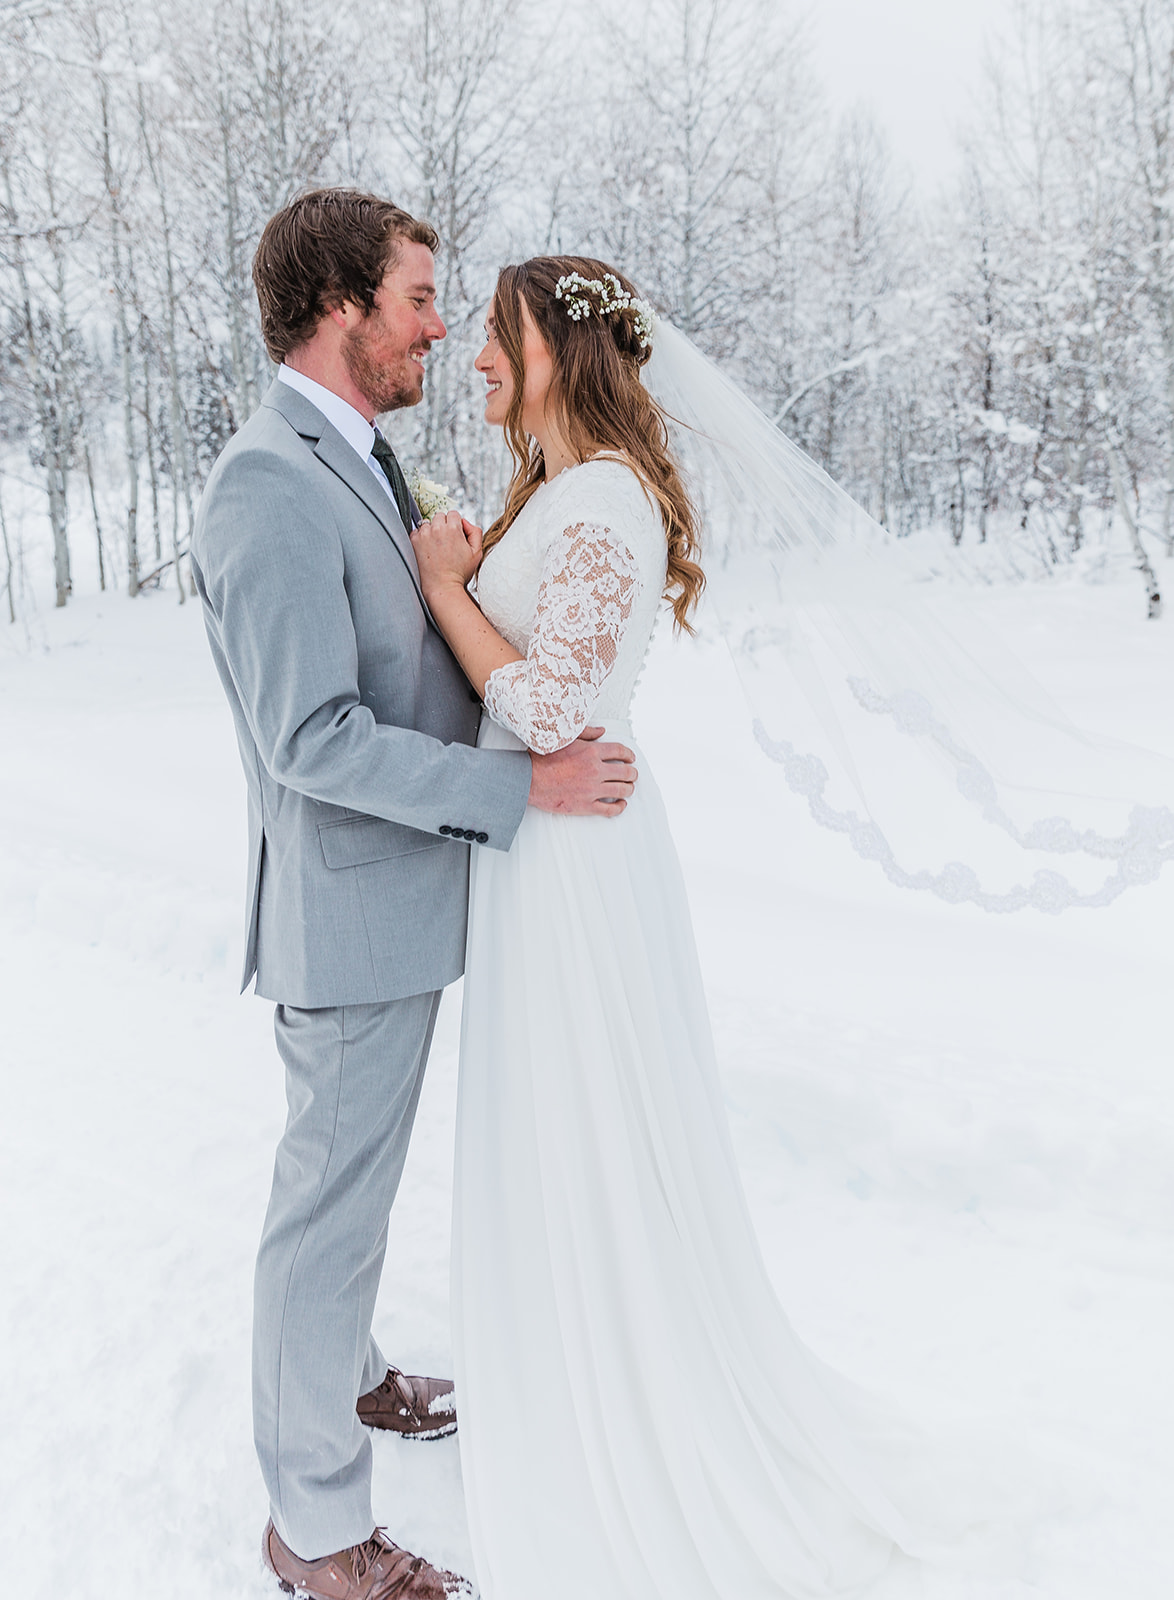 happy couple lace wedding veil flowing beautiful wedding attire elegant wedding hairstyle inspiration beautiful lace accents covered in white couple pose inspiration graceful bride professional utah photographer marriage goals man and wife #winterwedding #formals #tony'sgrove #cachevalley #snowcoveredtrees #bellaalderphotography #professionalphotographer #winterwonderland #couplegoals #weddingattire